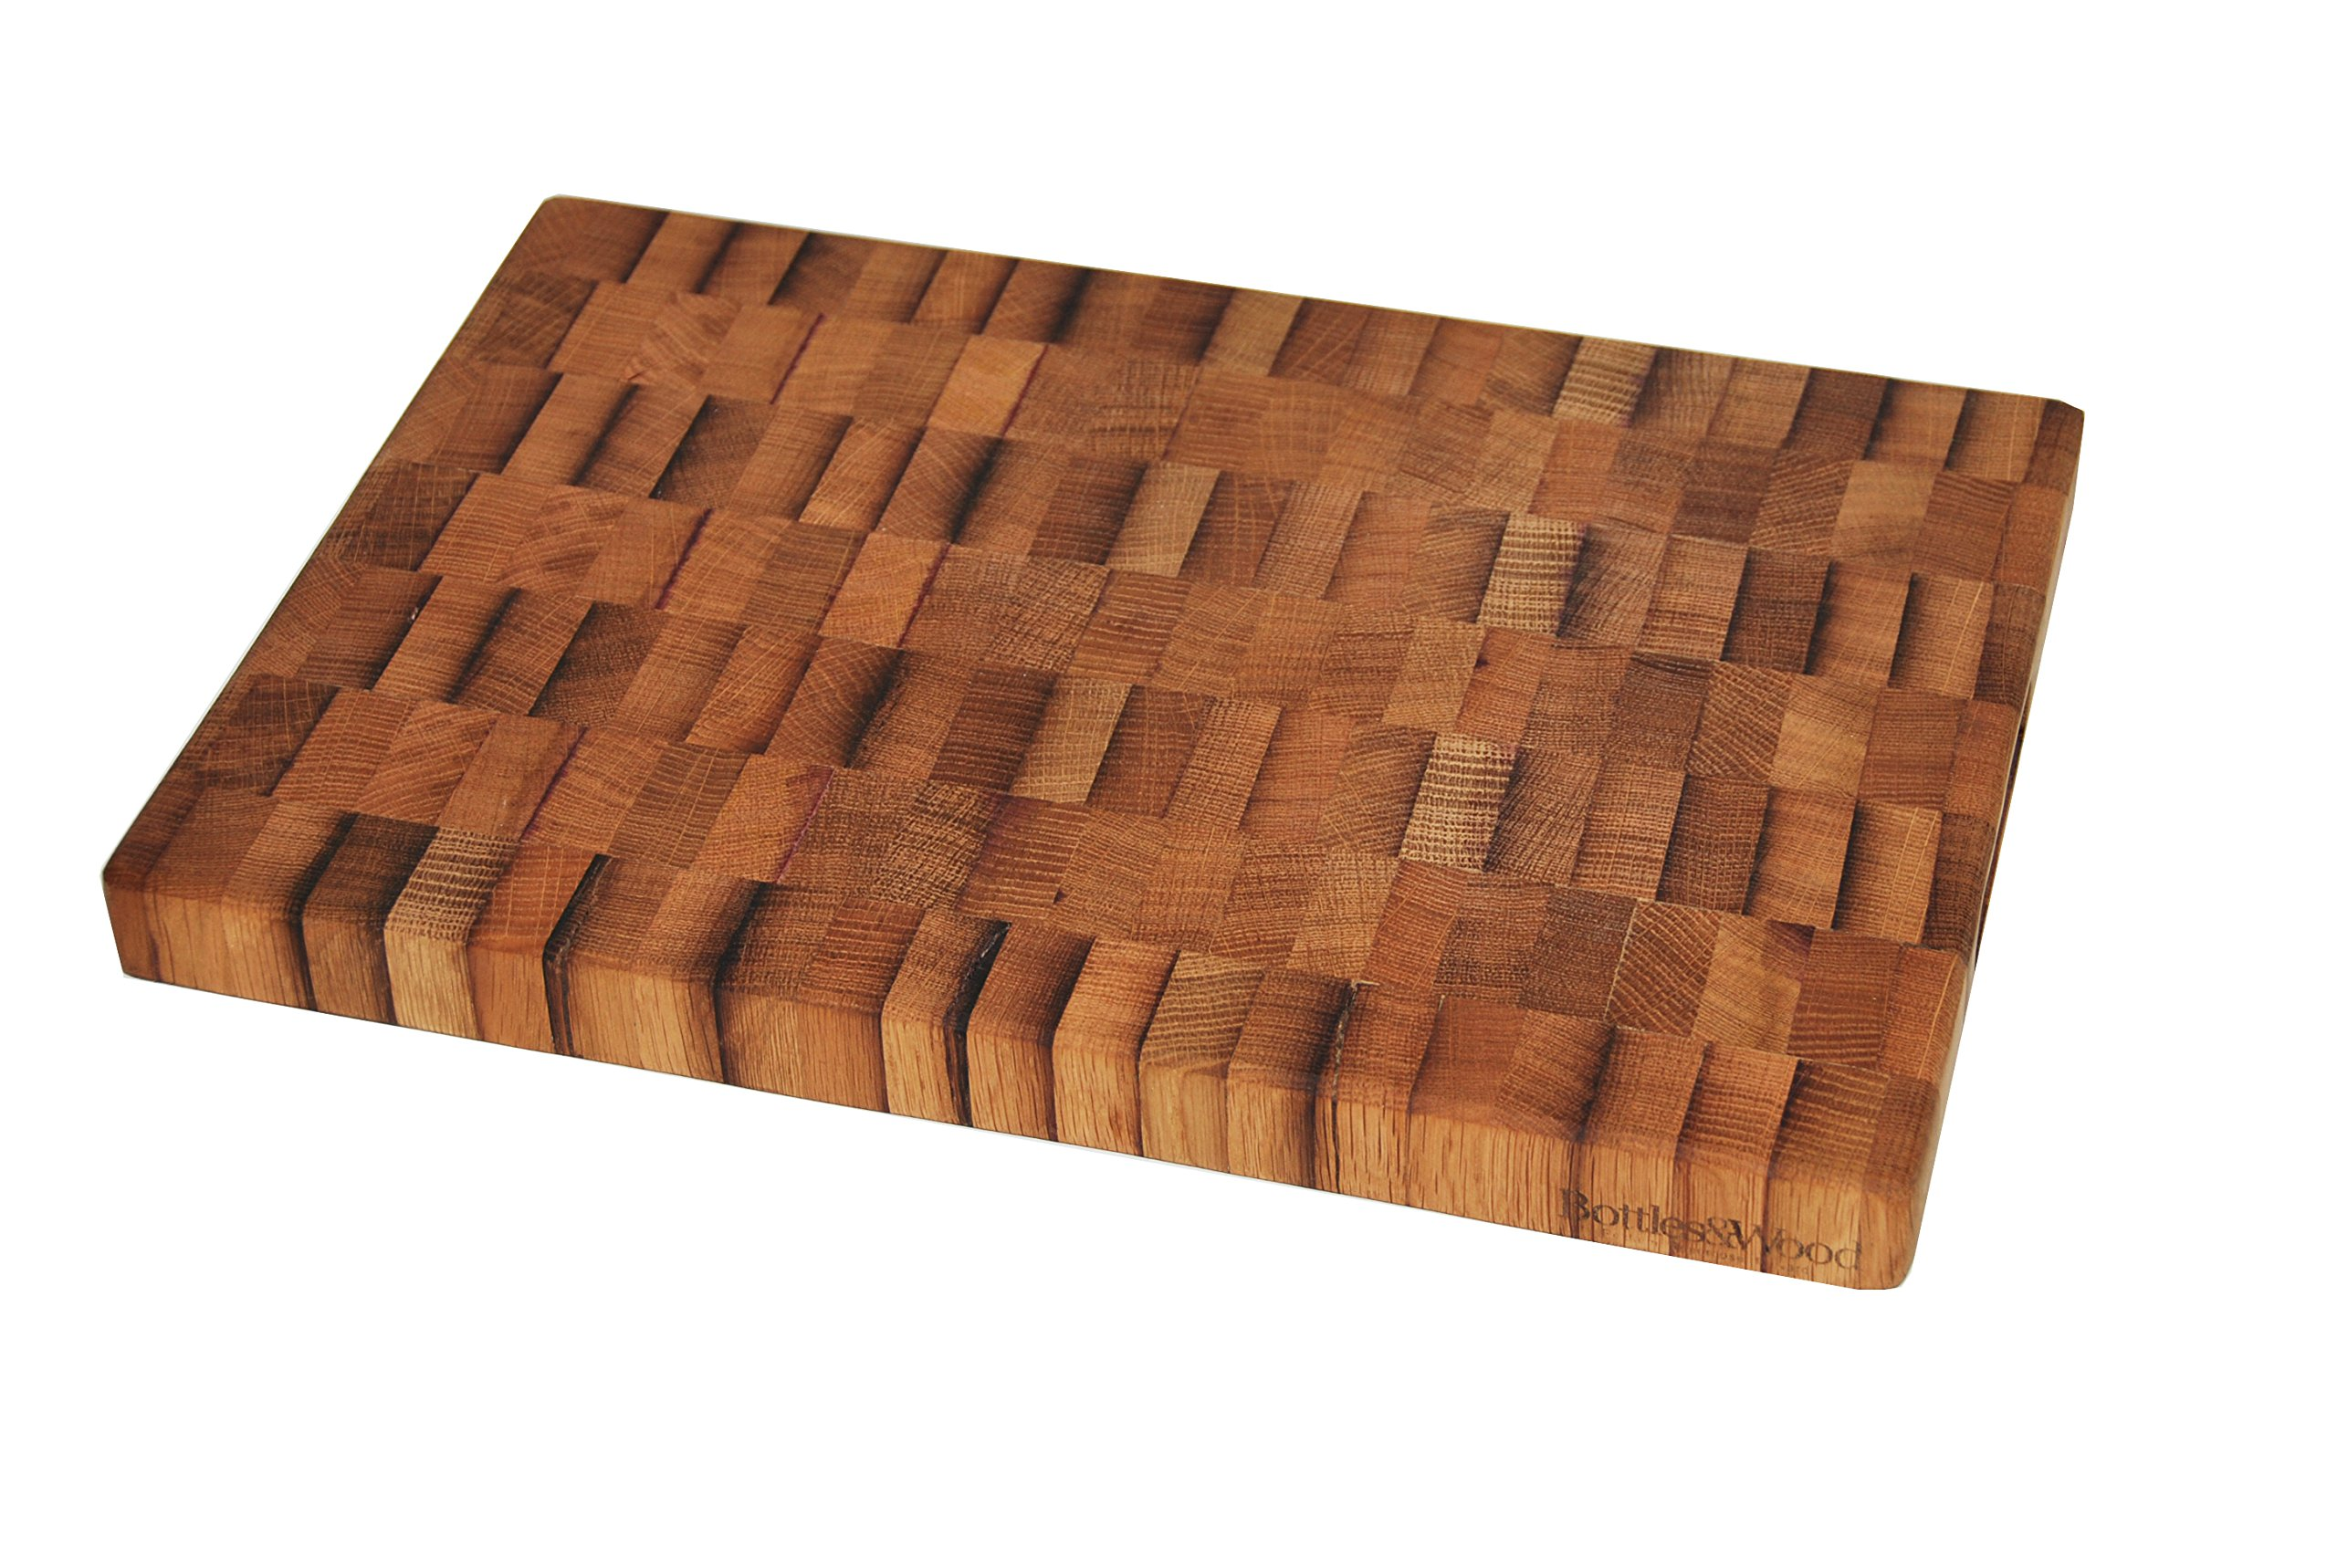 Bottles & Wood BT-BB-18 Barrel Top Butcher Block, Large, Natural Wood With Cabernet Red Wine Accents